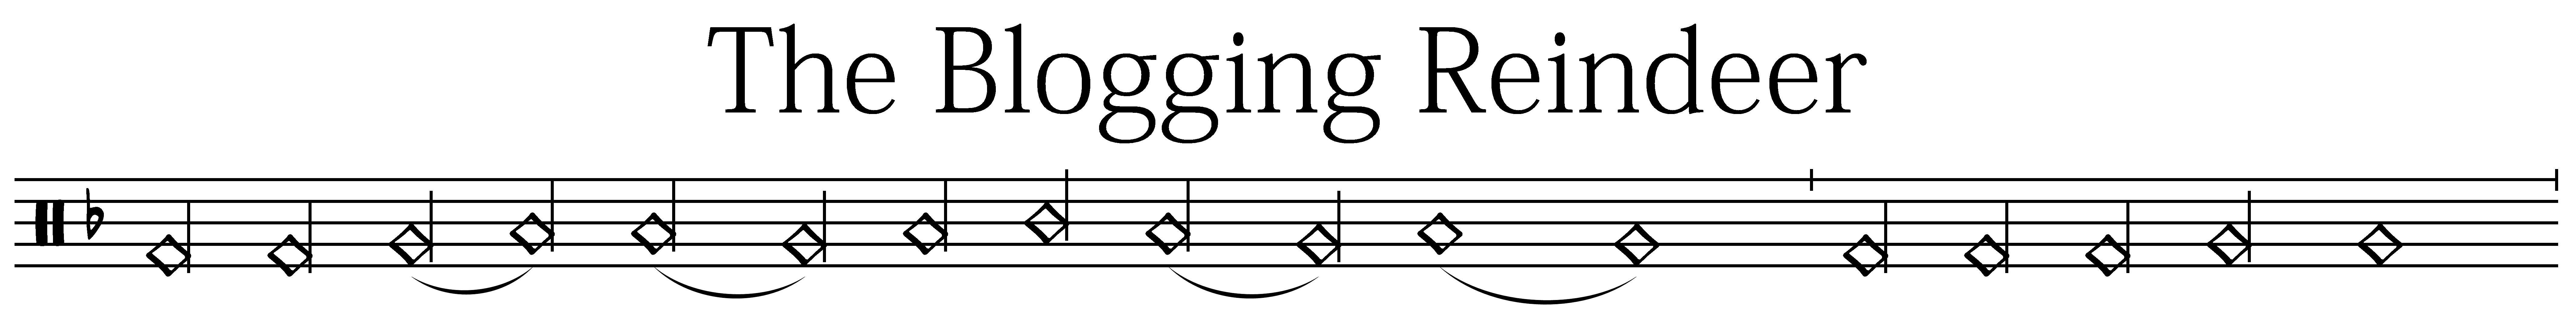 The Blogging Reindeer Logo